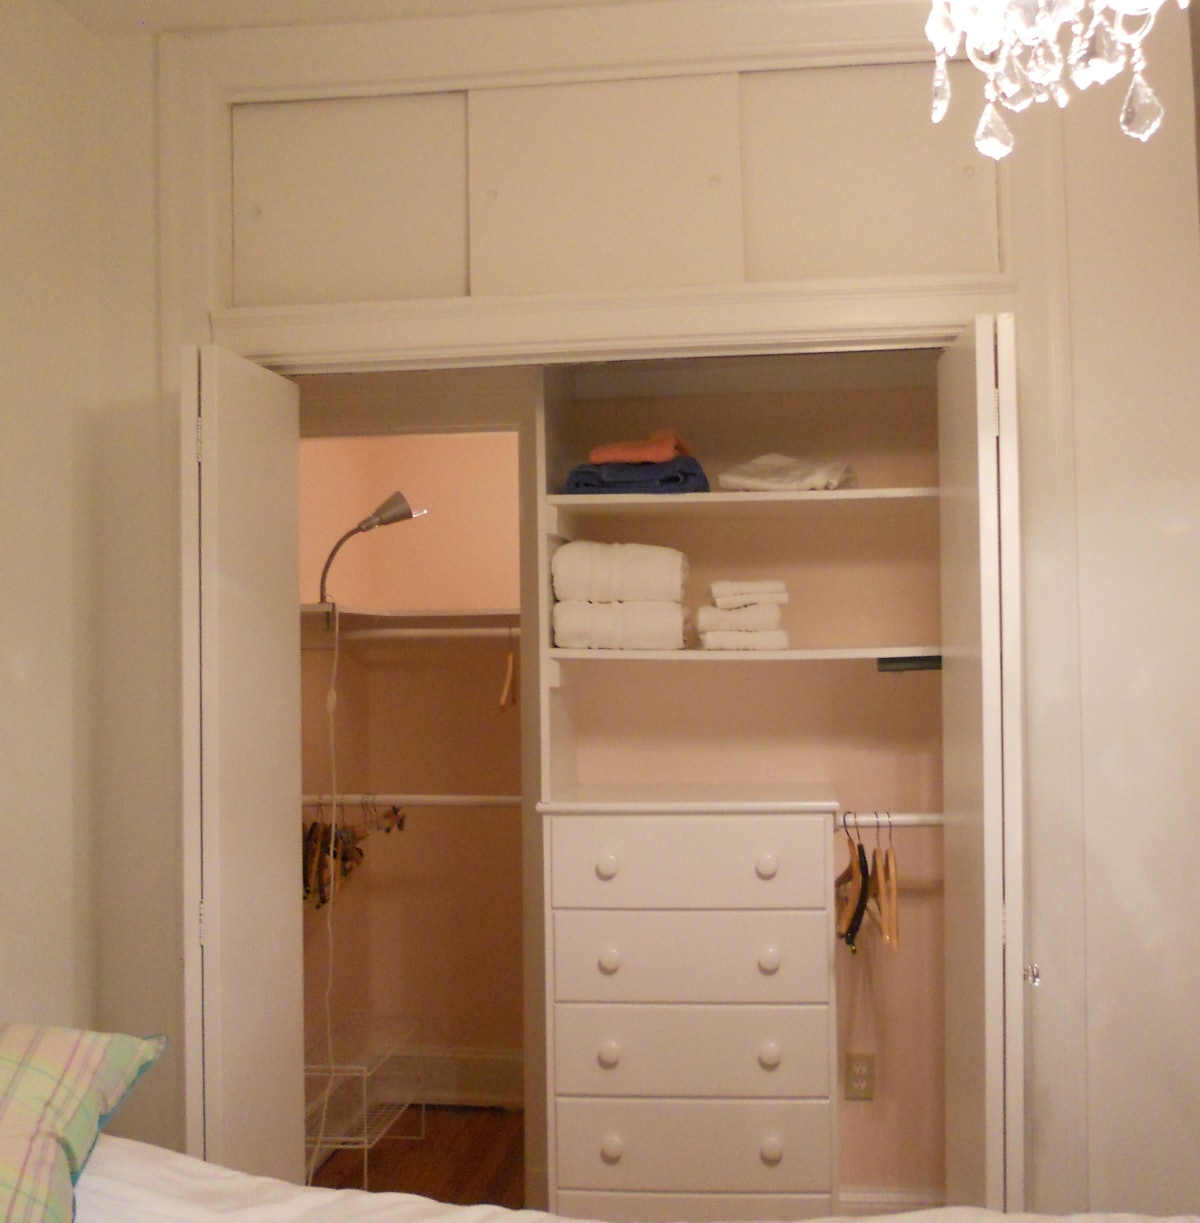 Large bedroom closet and crystal chandelier.